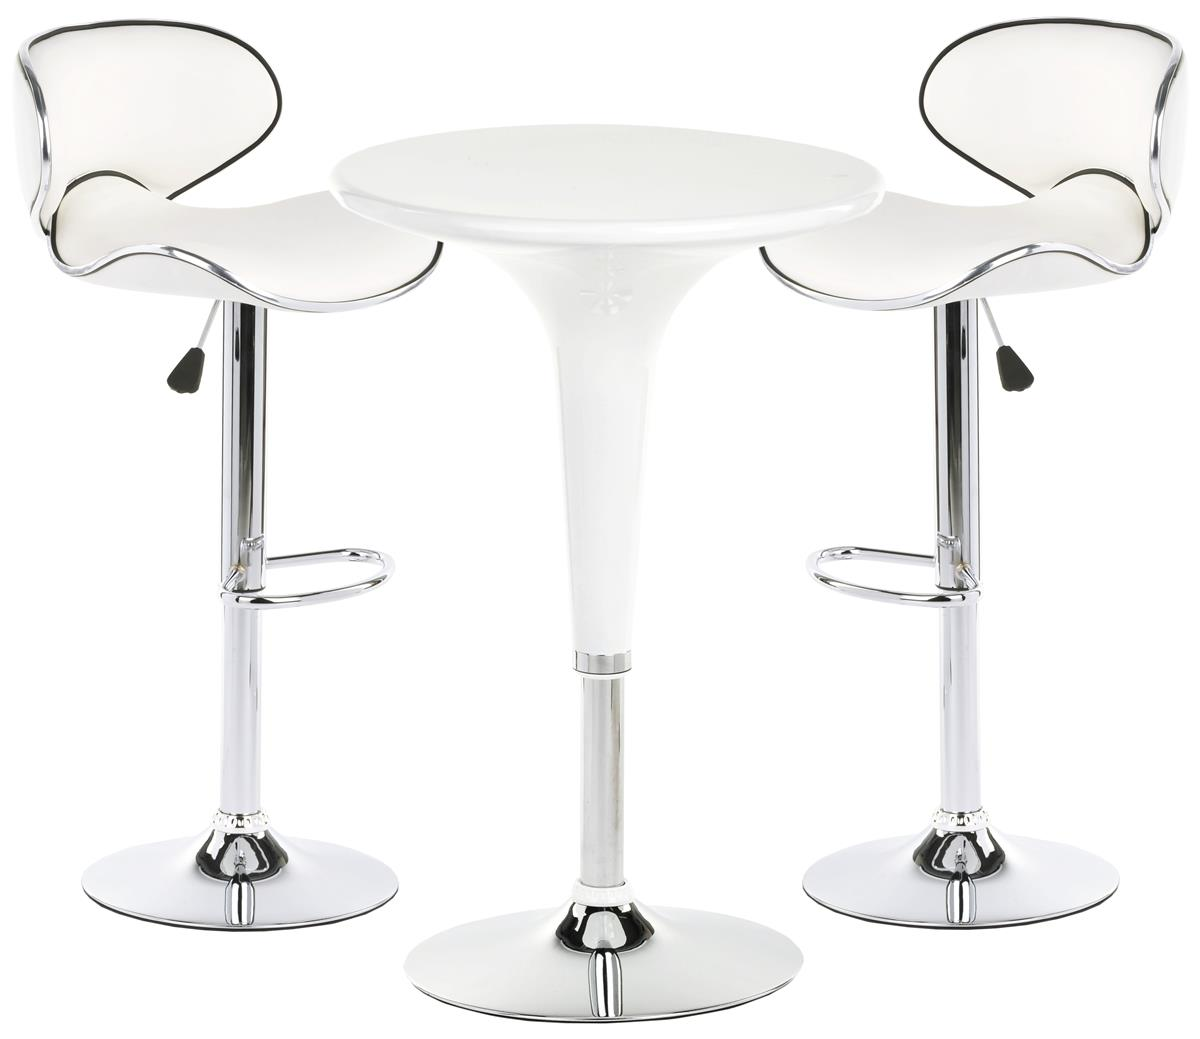 Brilliant Pub Table Set With 1 Round Cocktail Table 2 Adjustable Leatherette Stools White Forskolin Free Trial Chair Design Images Forskolin Free Trialorg